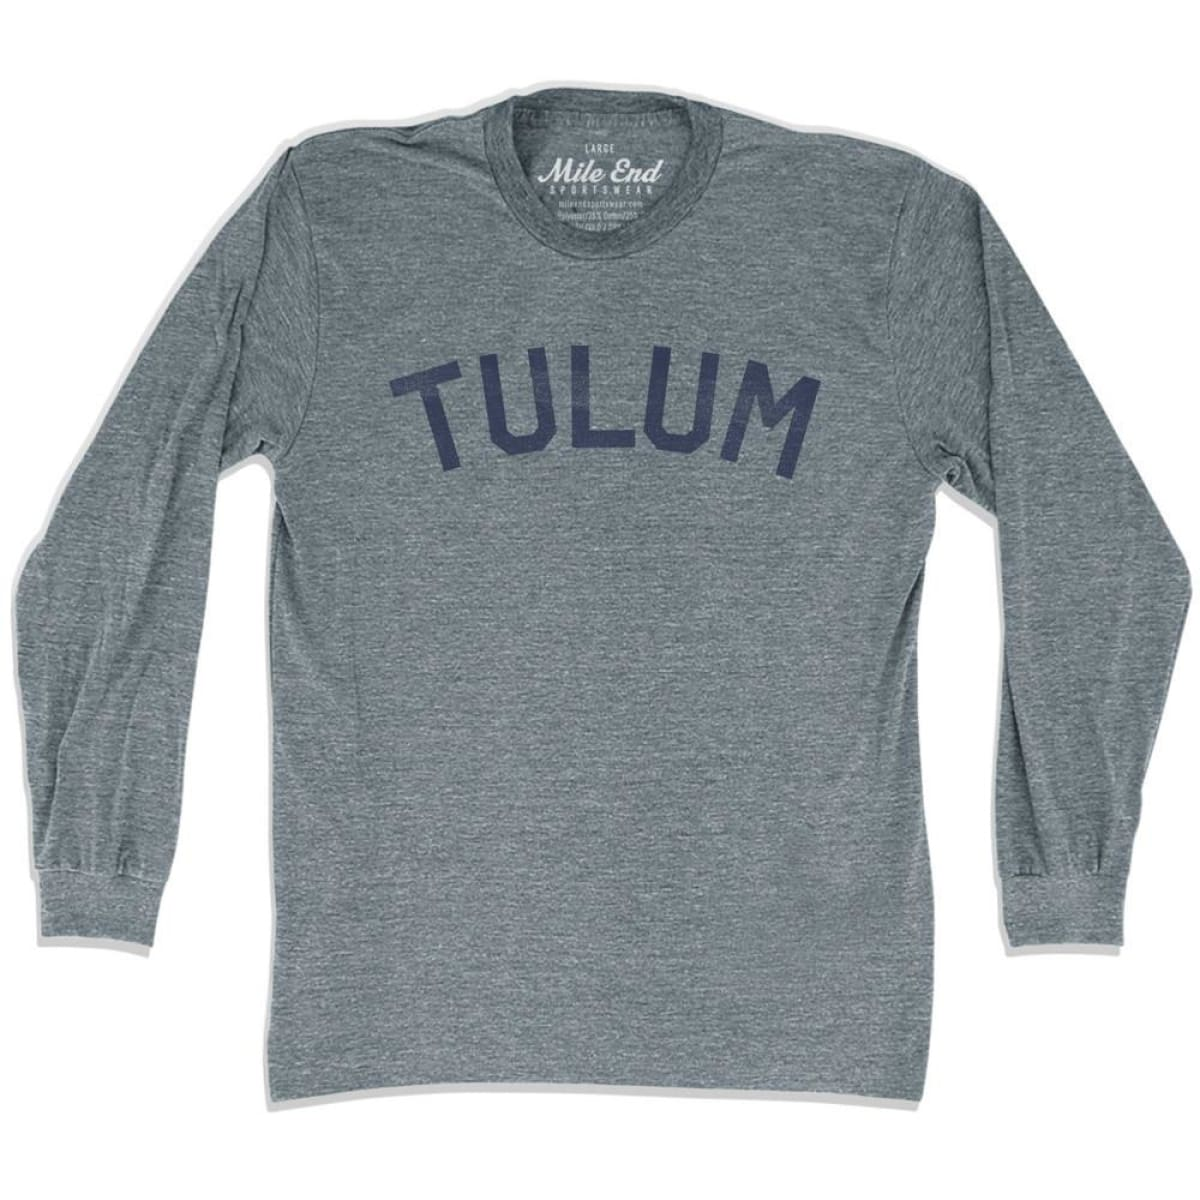 Tulum City Vintage Long-Sleeve T-shirt - Athletic Grey / Adult Small - Mile End City